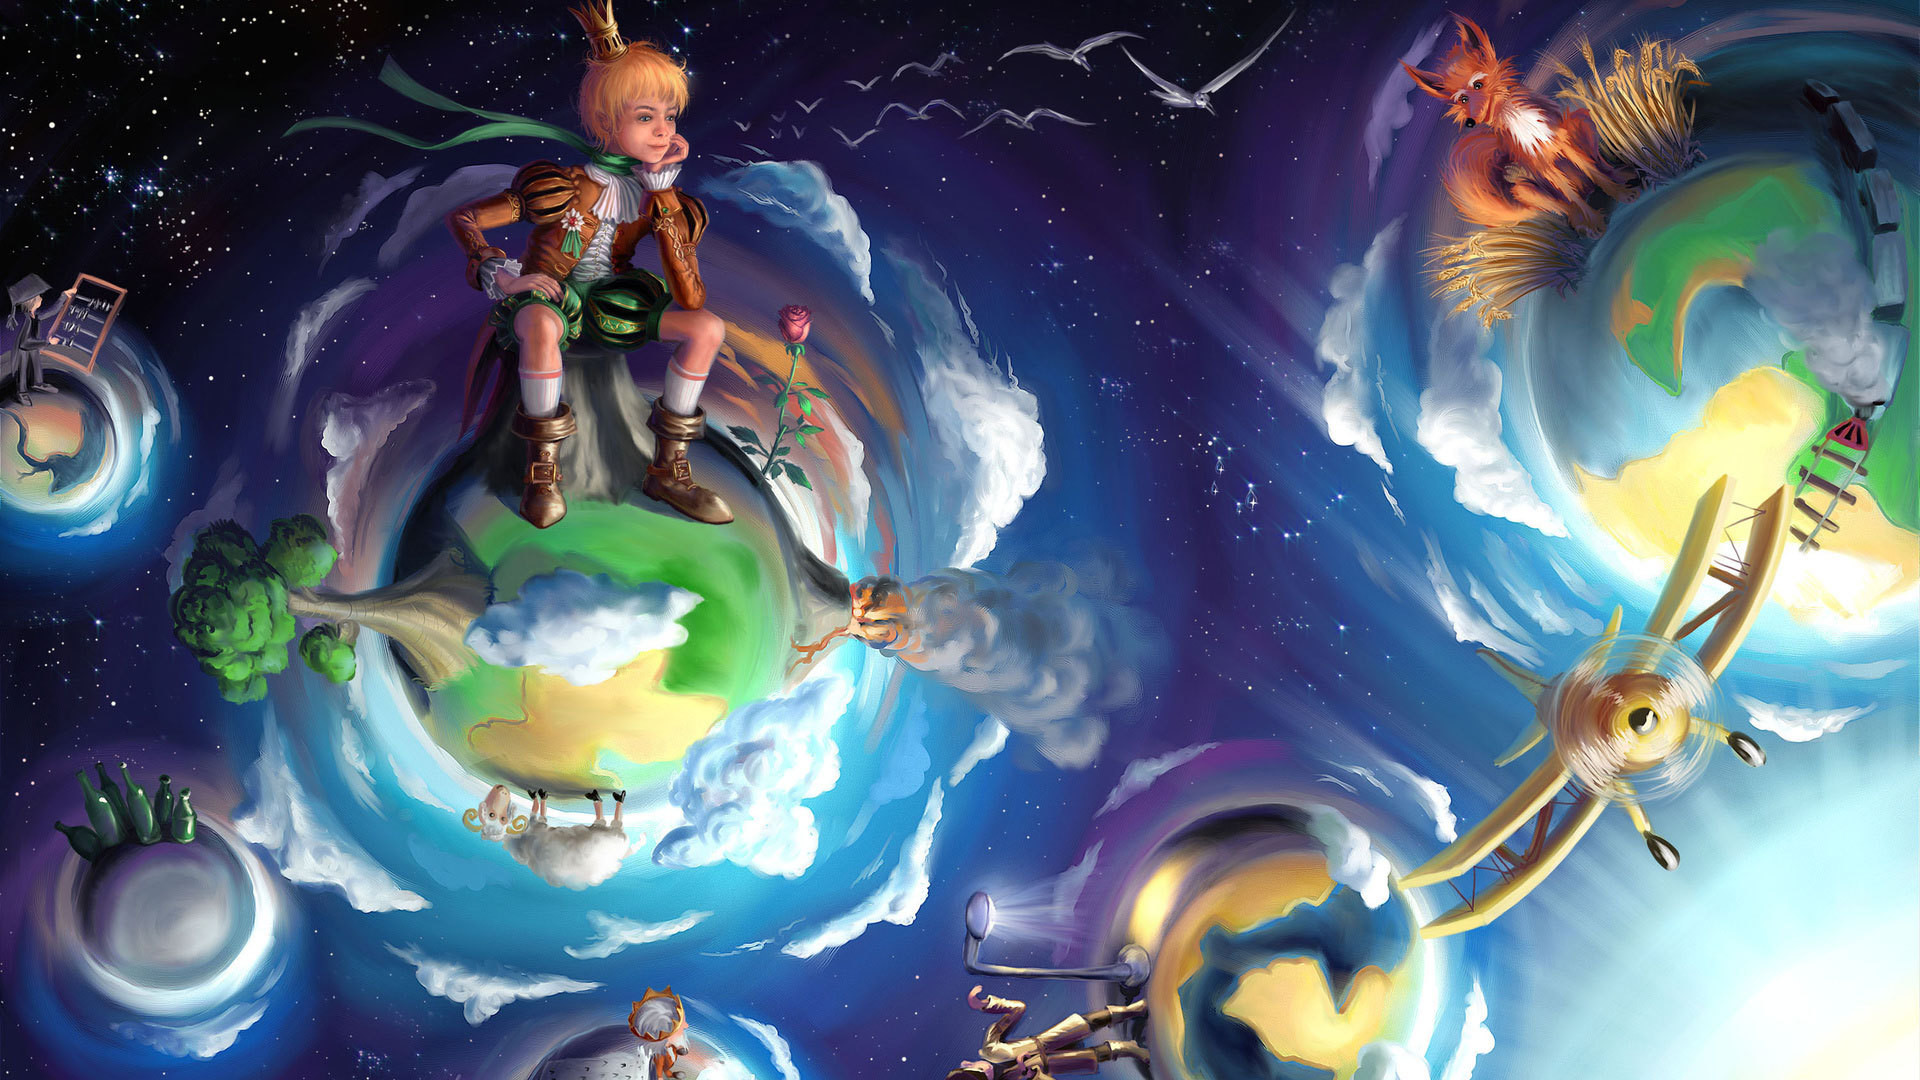 Fairy tale about the little prince